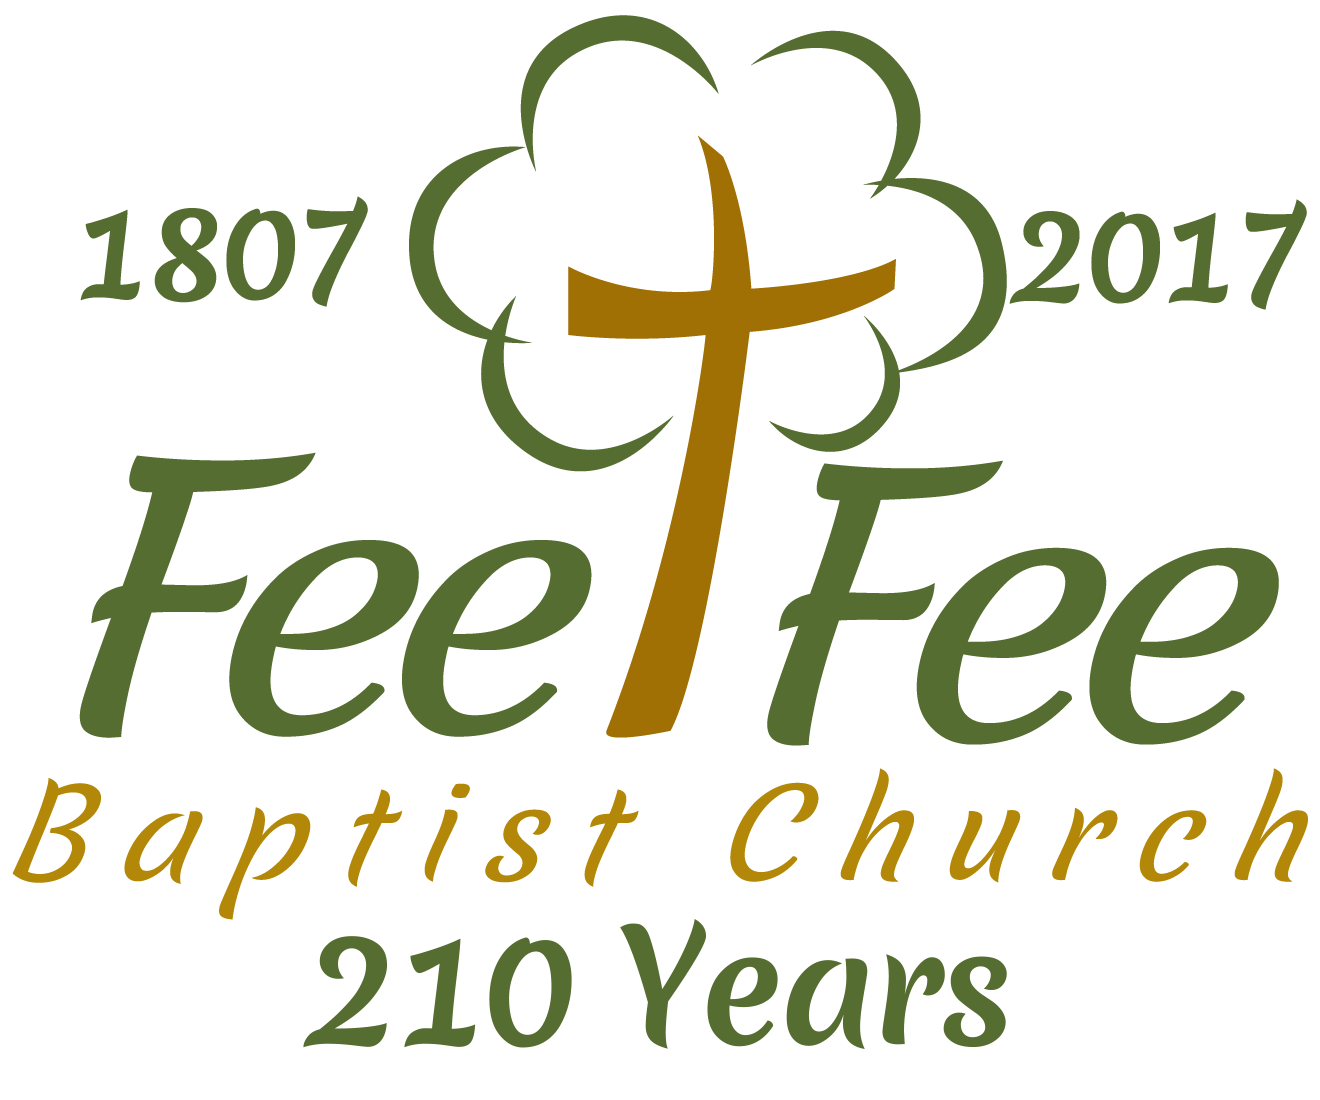 Fee Fee Baptist Church | Bridgeton Missouri